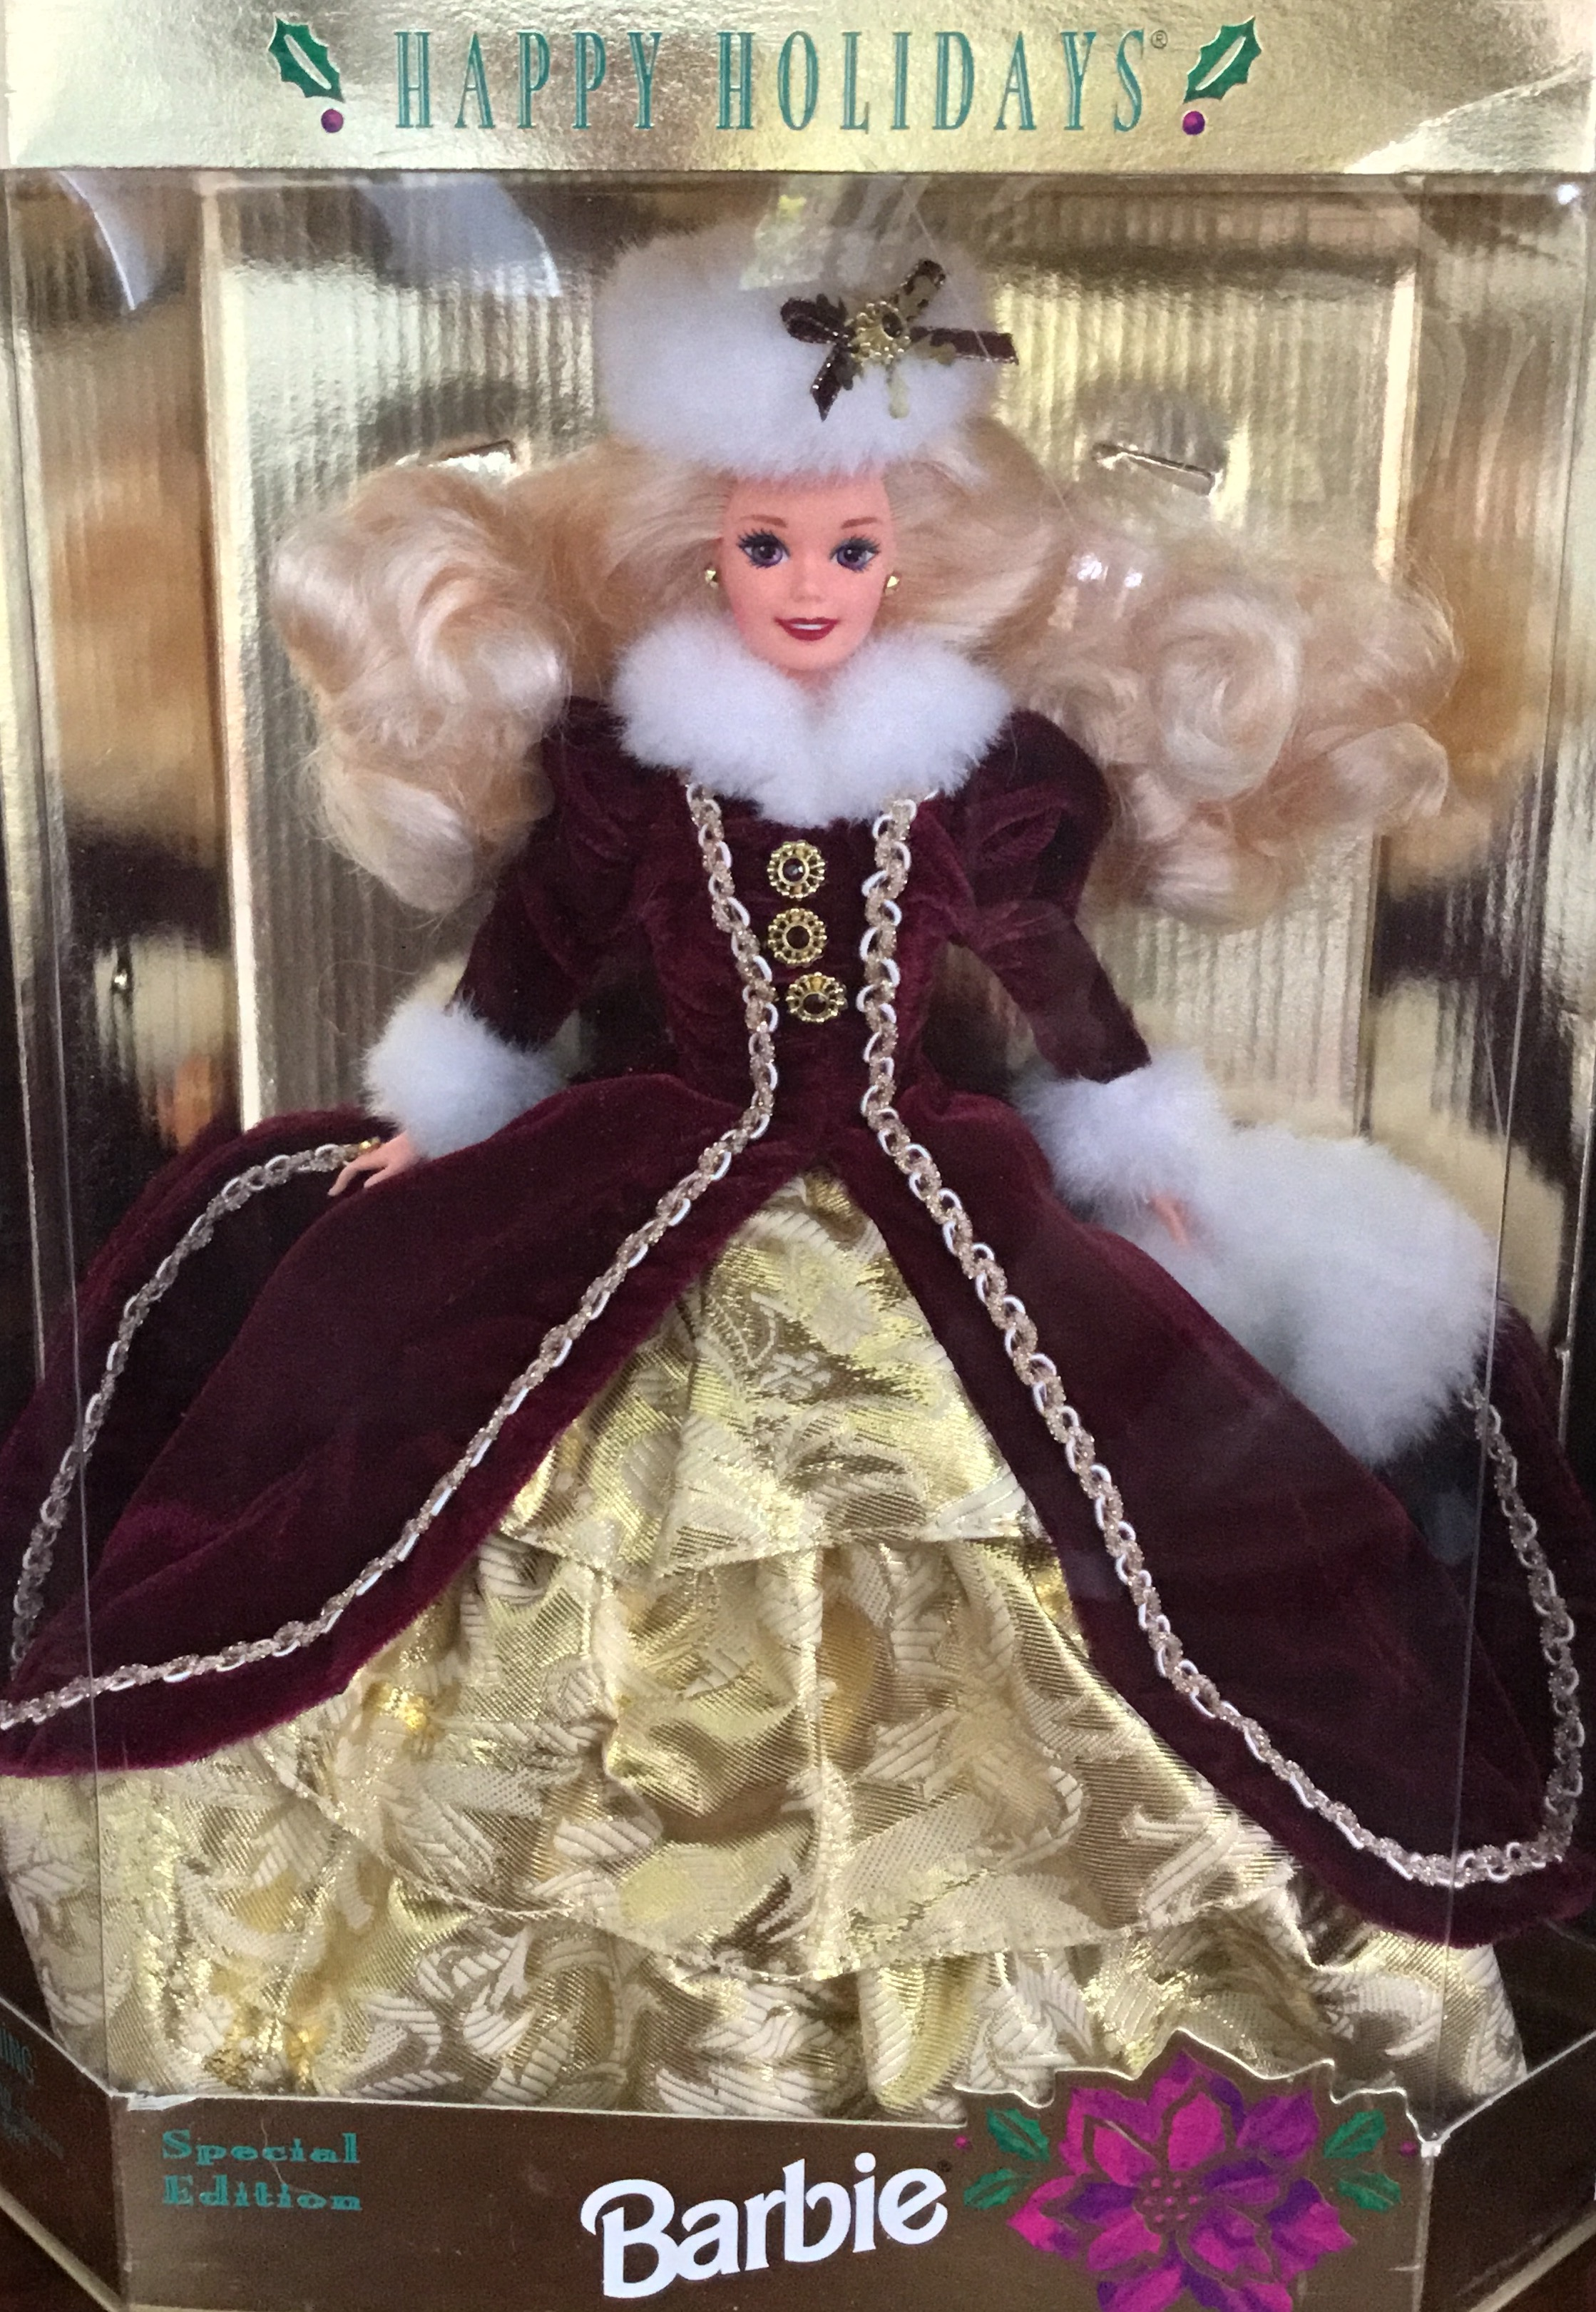 1996 Special Edition Happy Holidays Barbie